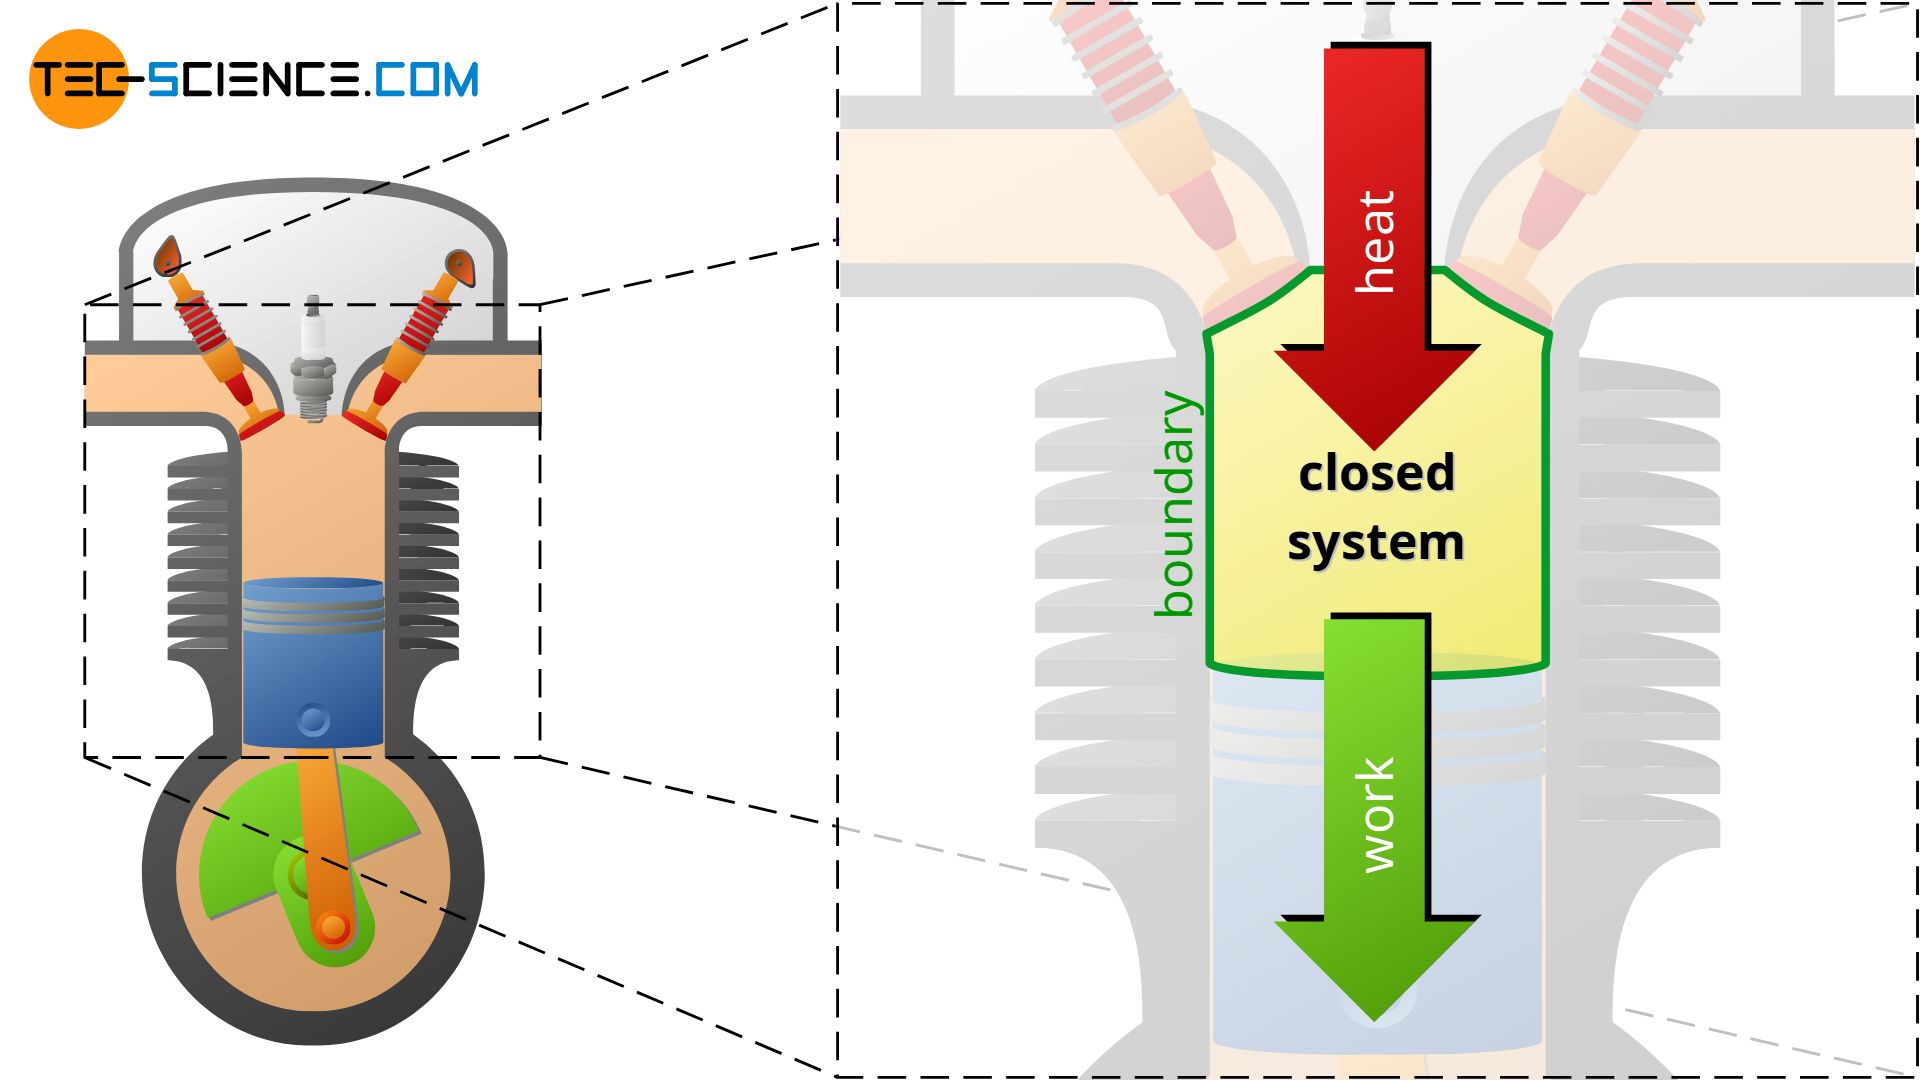 4-stroke internal combustion engine as an example of a closed system